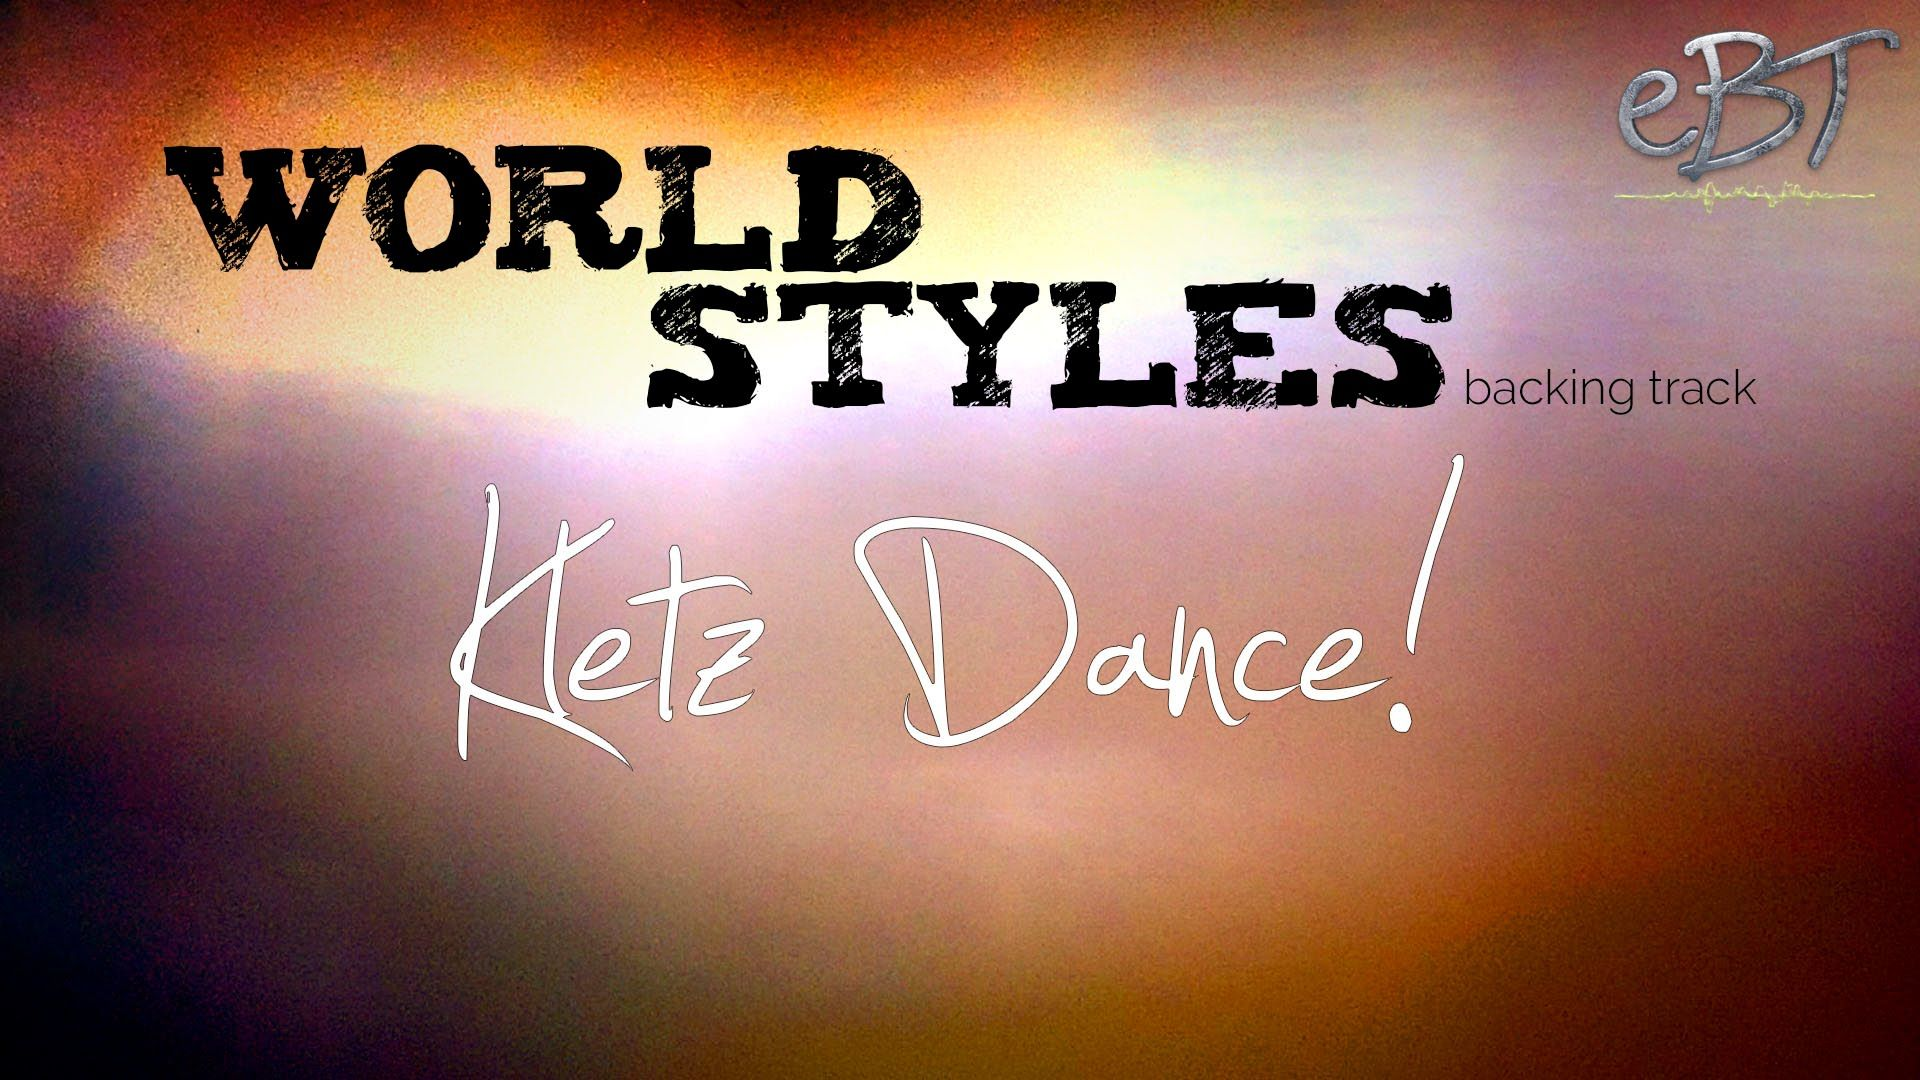 World Styles Backing Track in A Minor, 150 bpm Backing